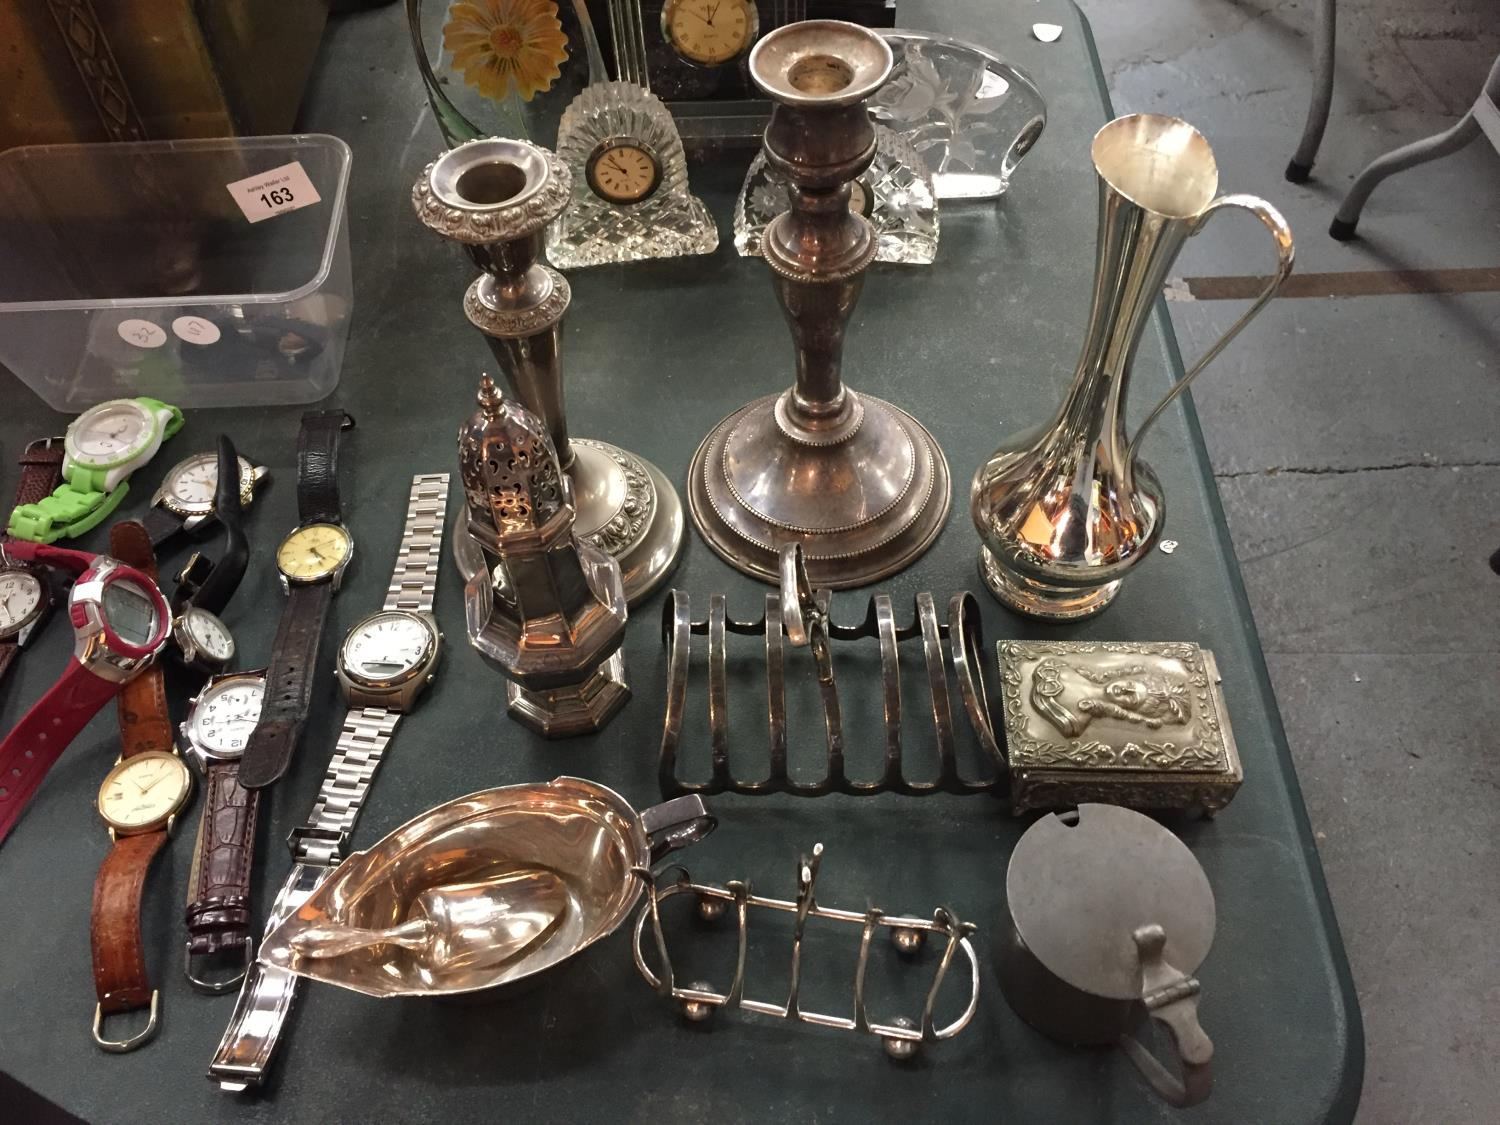 A MIXED SELECTION OF SILVER PLATED ITEMS TO INCLUDE TWO TOAST RACKS, CANDLESTICKS ETC